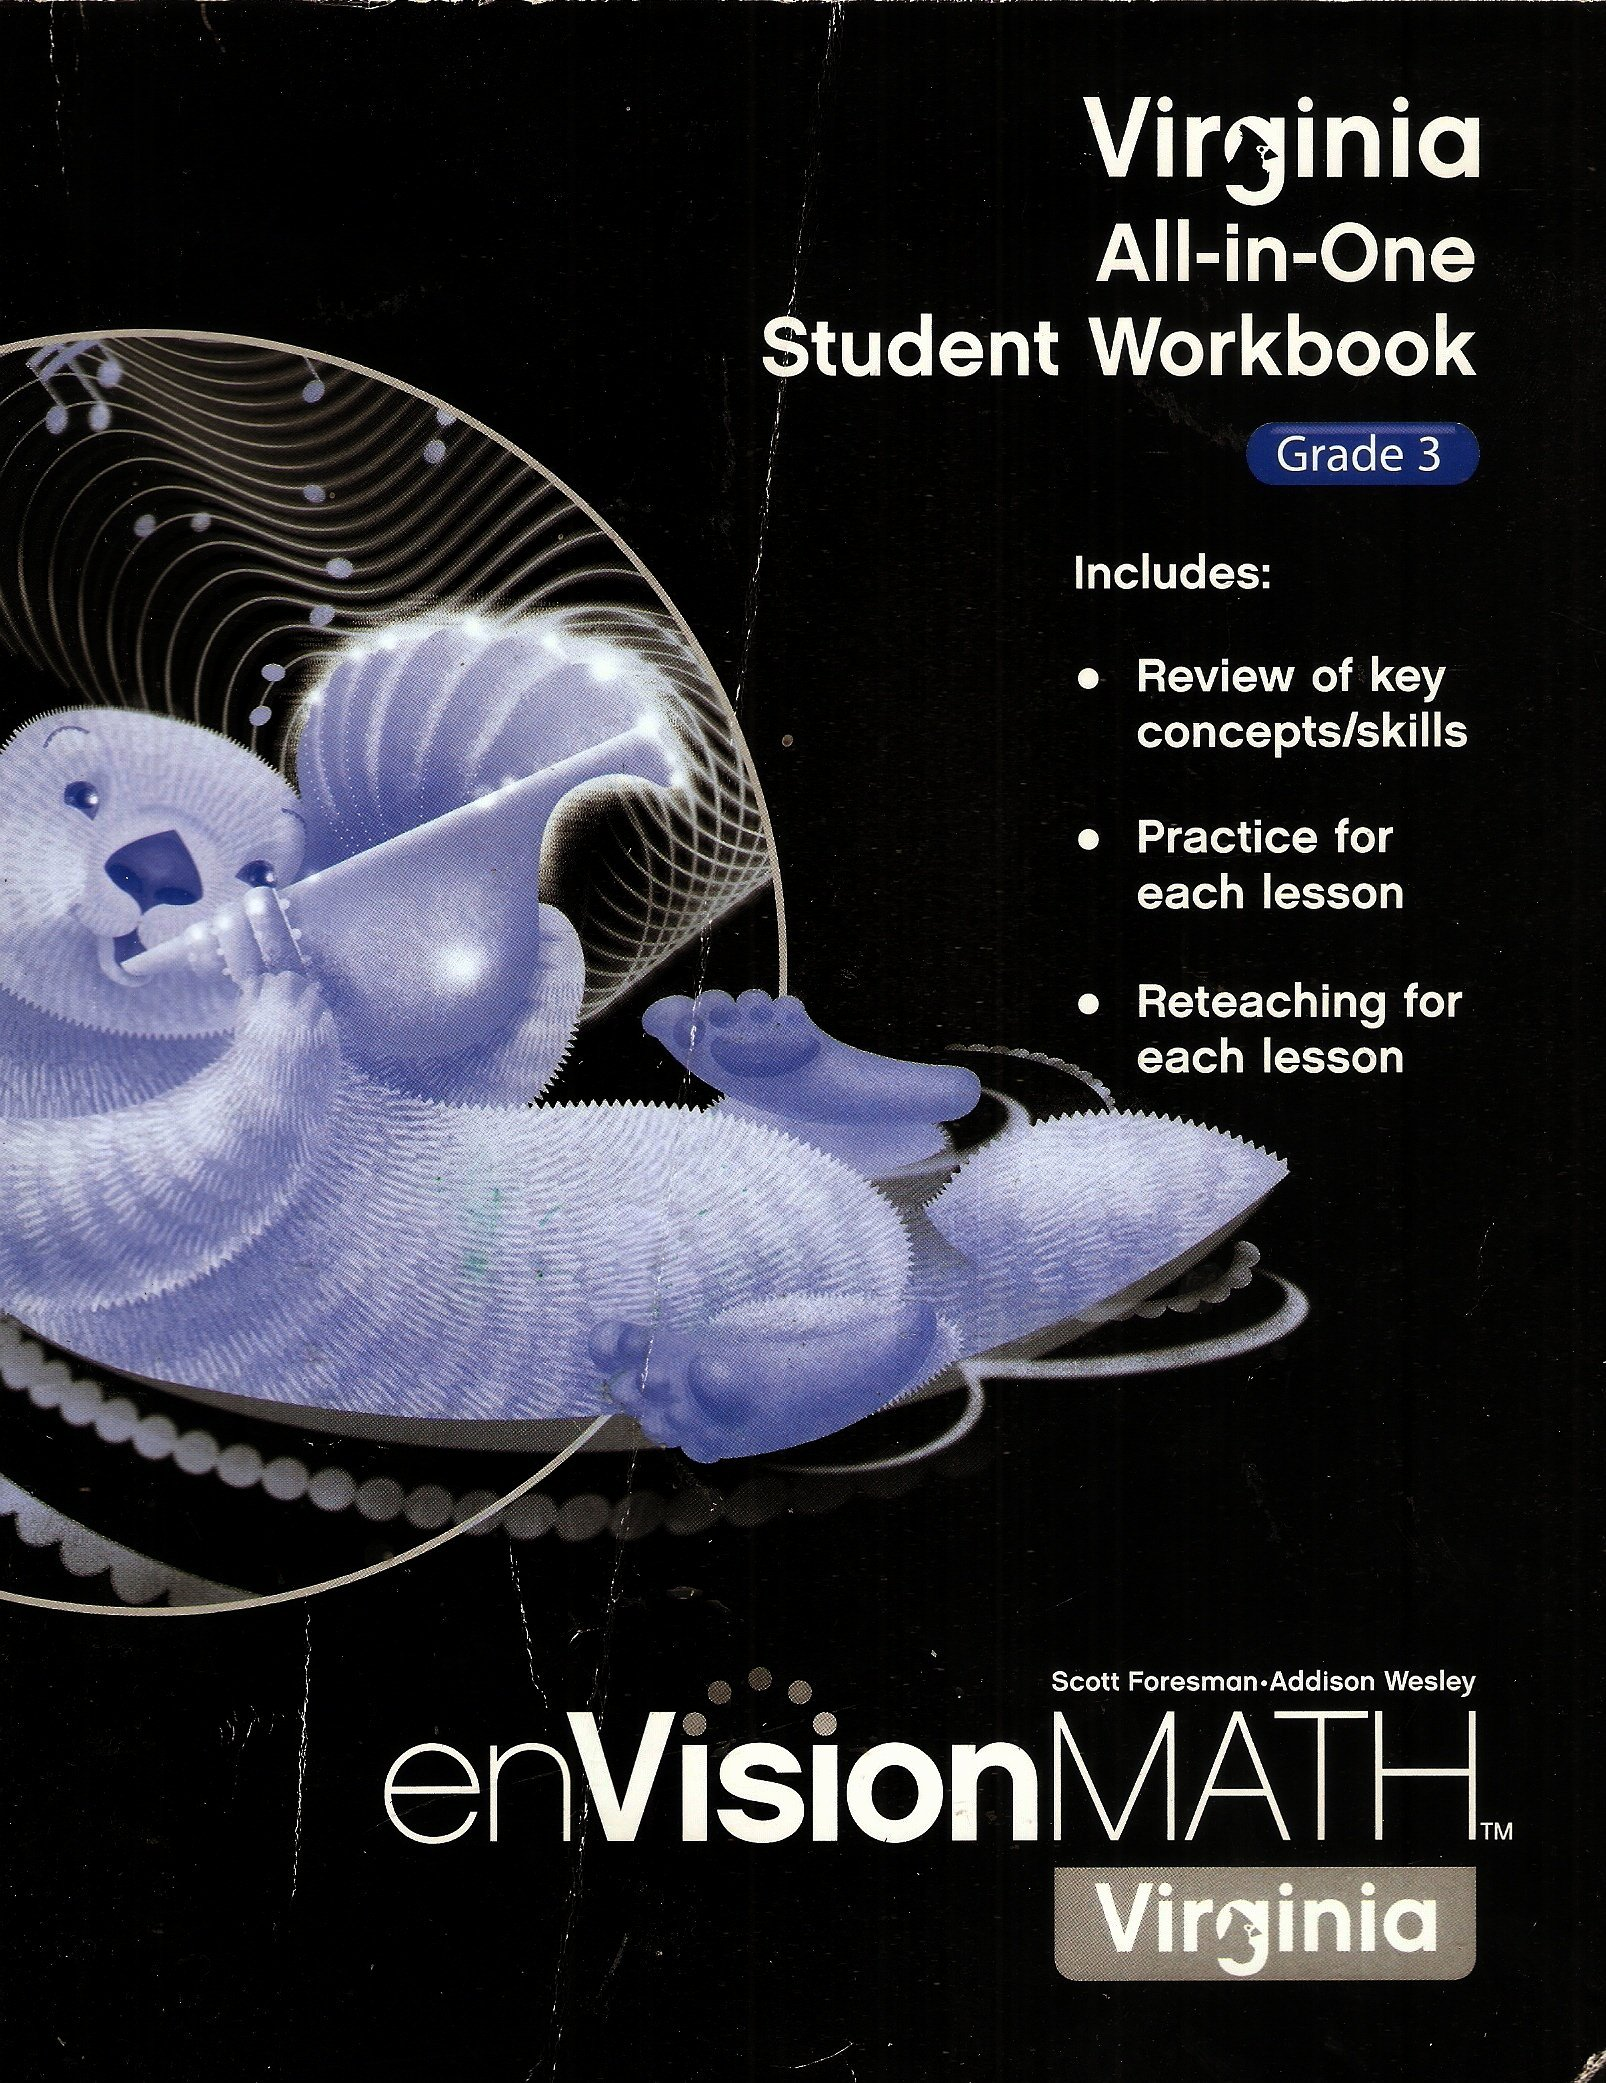 Envision Math Grade 3 Worksheets Inspirational Virginia All In E Student Workbook Grade 3 Envision Math